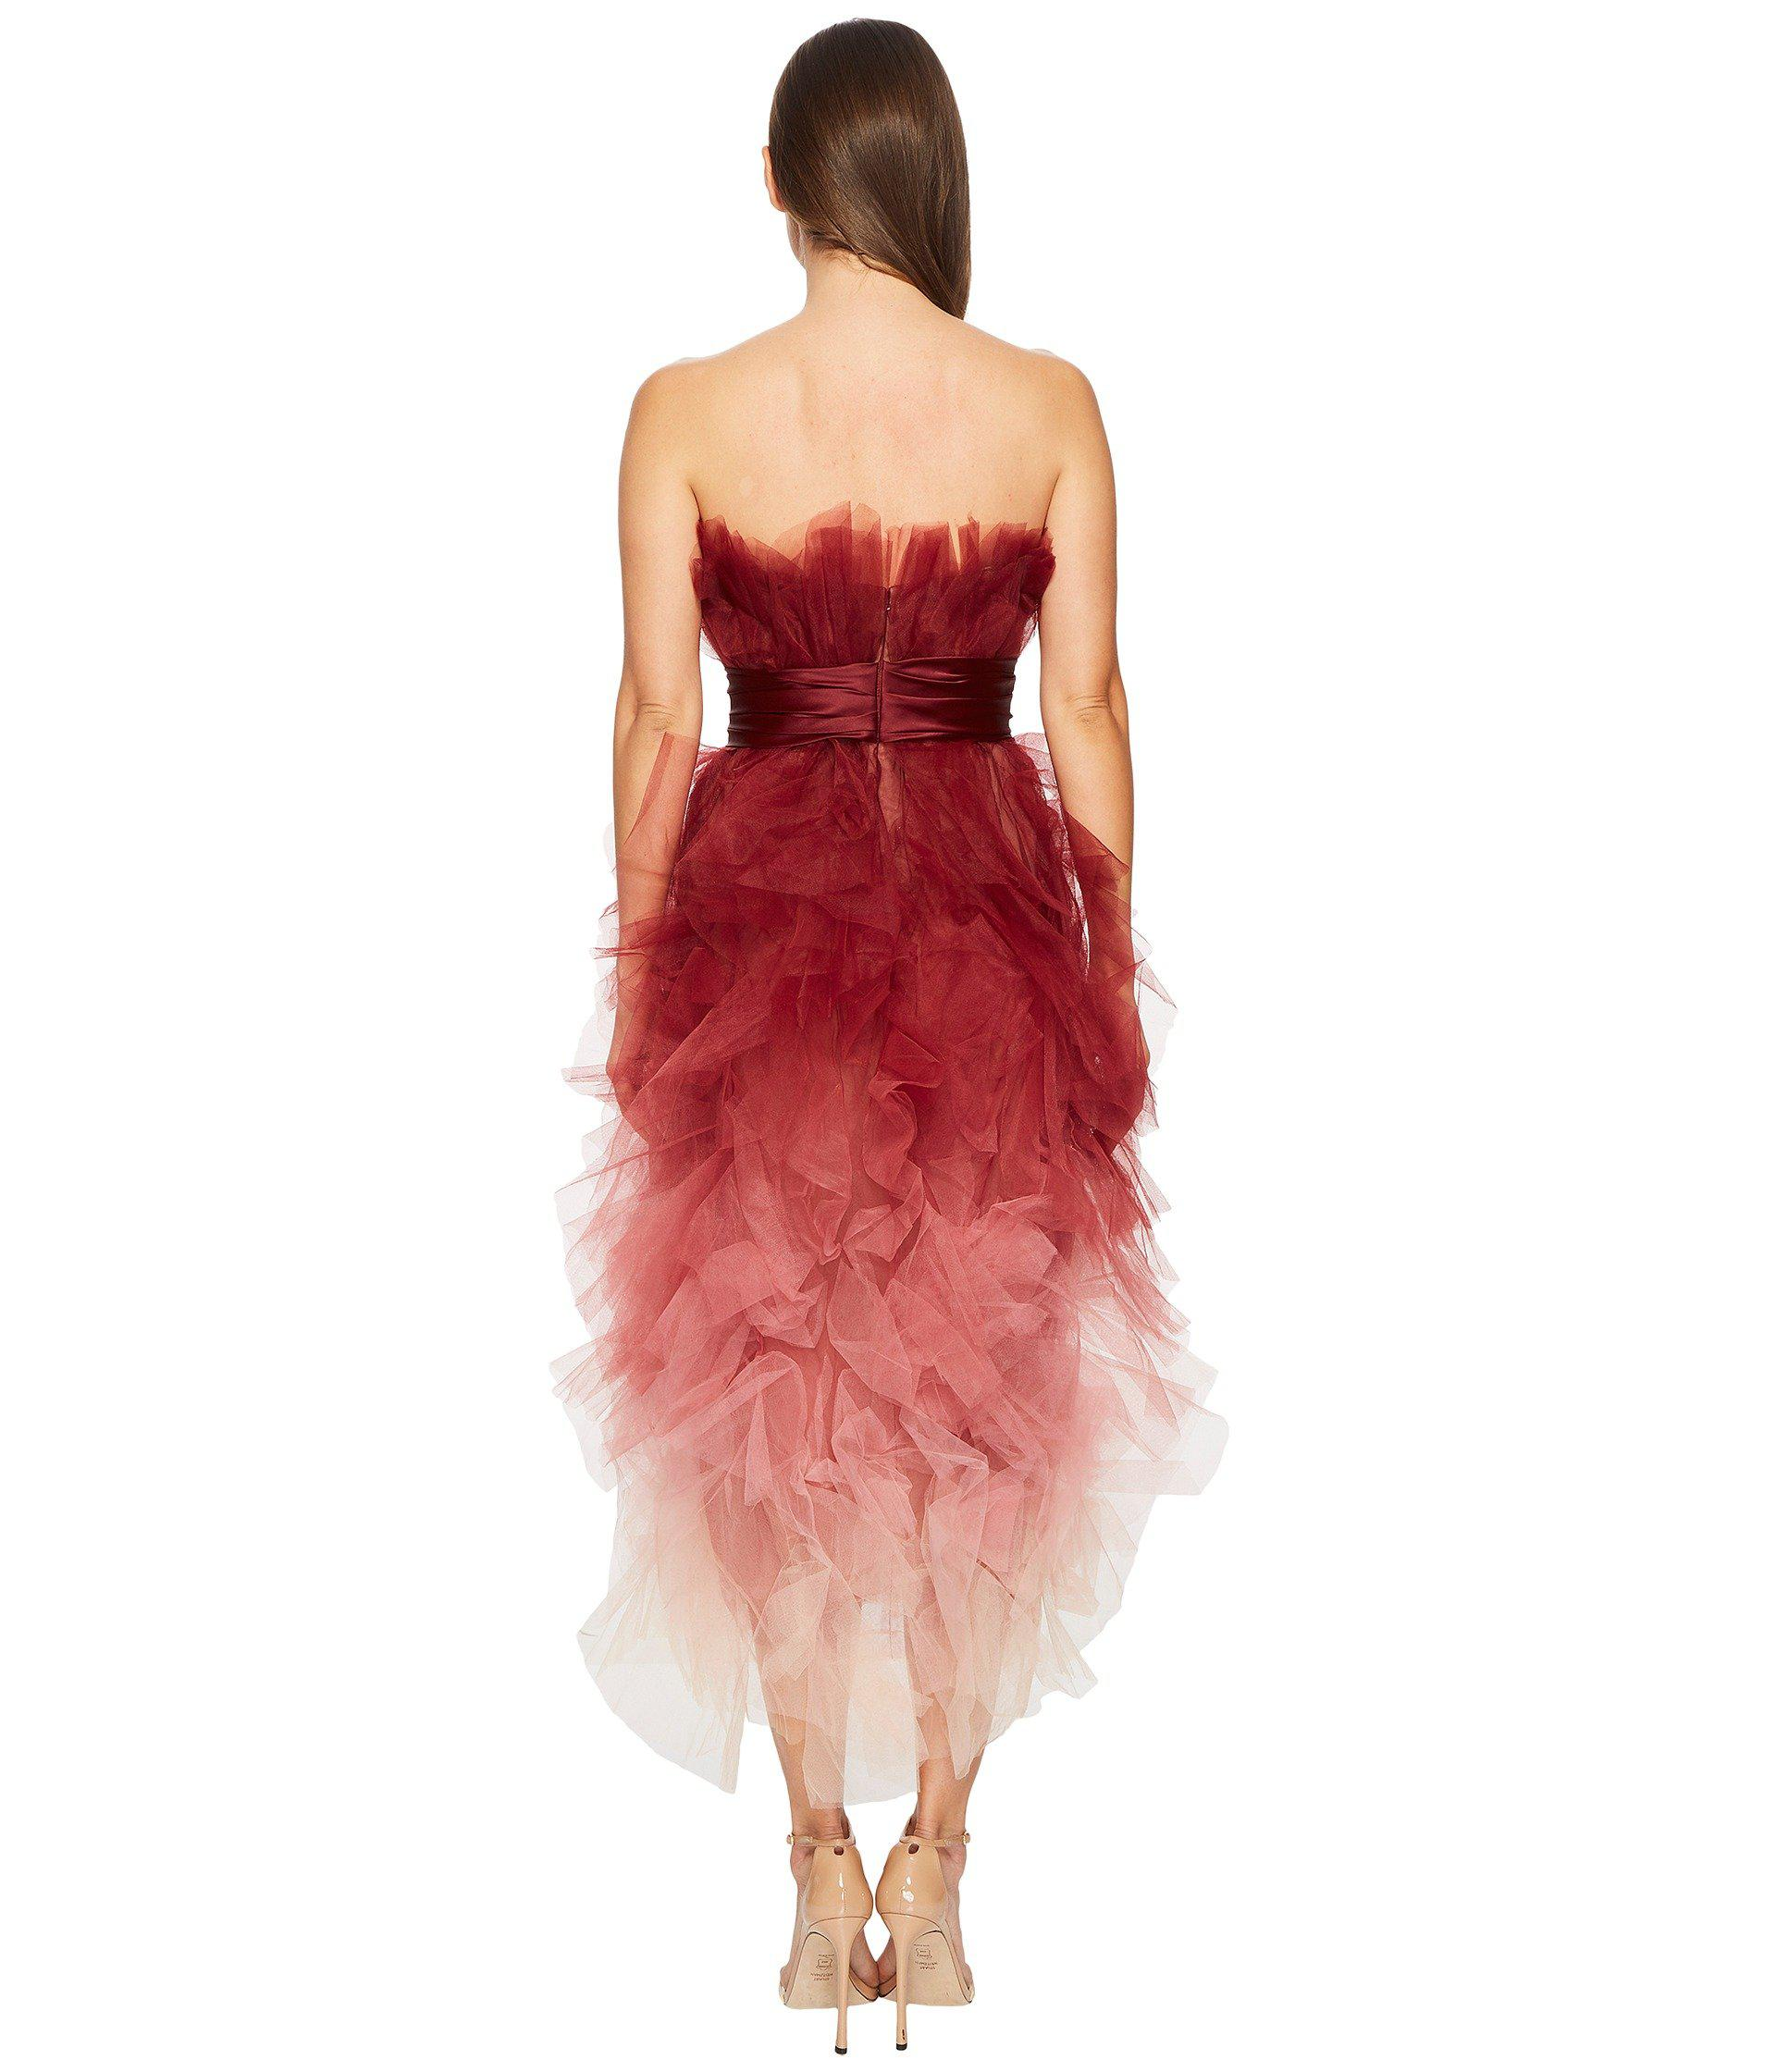 f180ffe67af Marchesa Strapless Cocktail In Ombre Tulle Dress in Red - Lyst